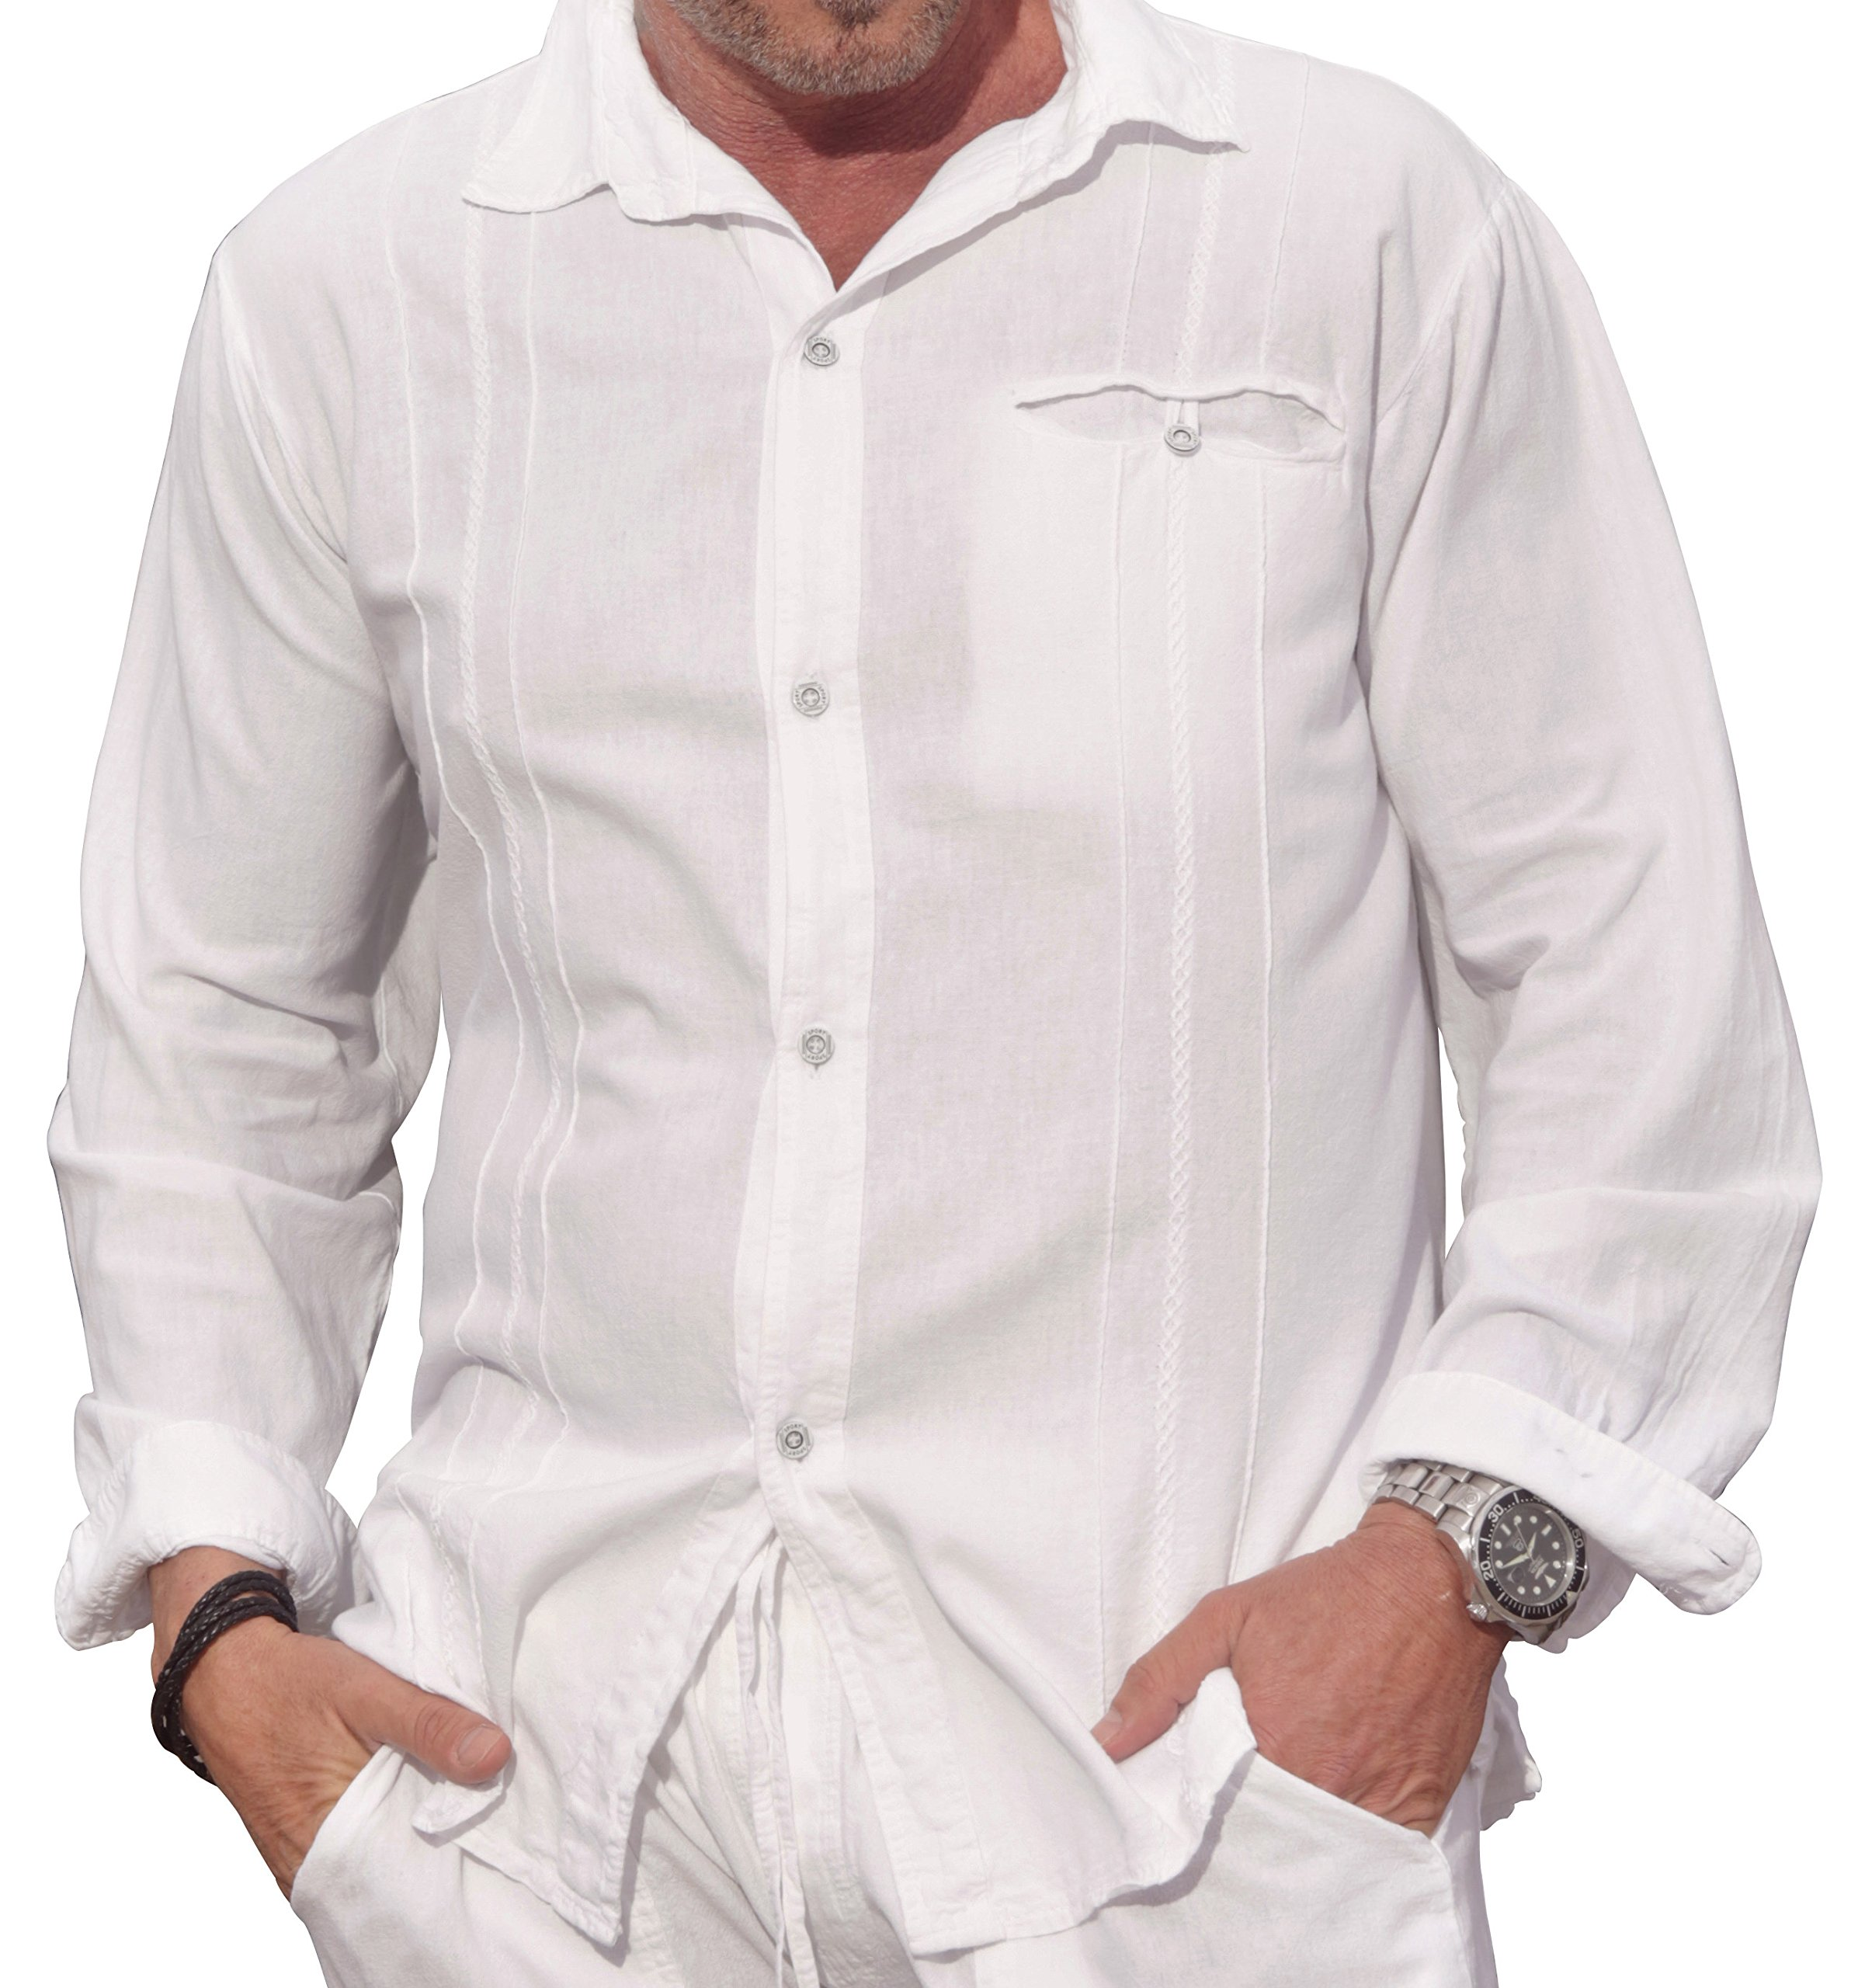 M&B USA Cotton White Long-Sleeve Button Loop Closure Pocket Organic Embroidered Button Down Shirt (XX-Large, White) by M&B USA (Image #2)